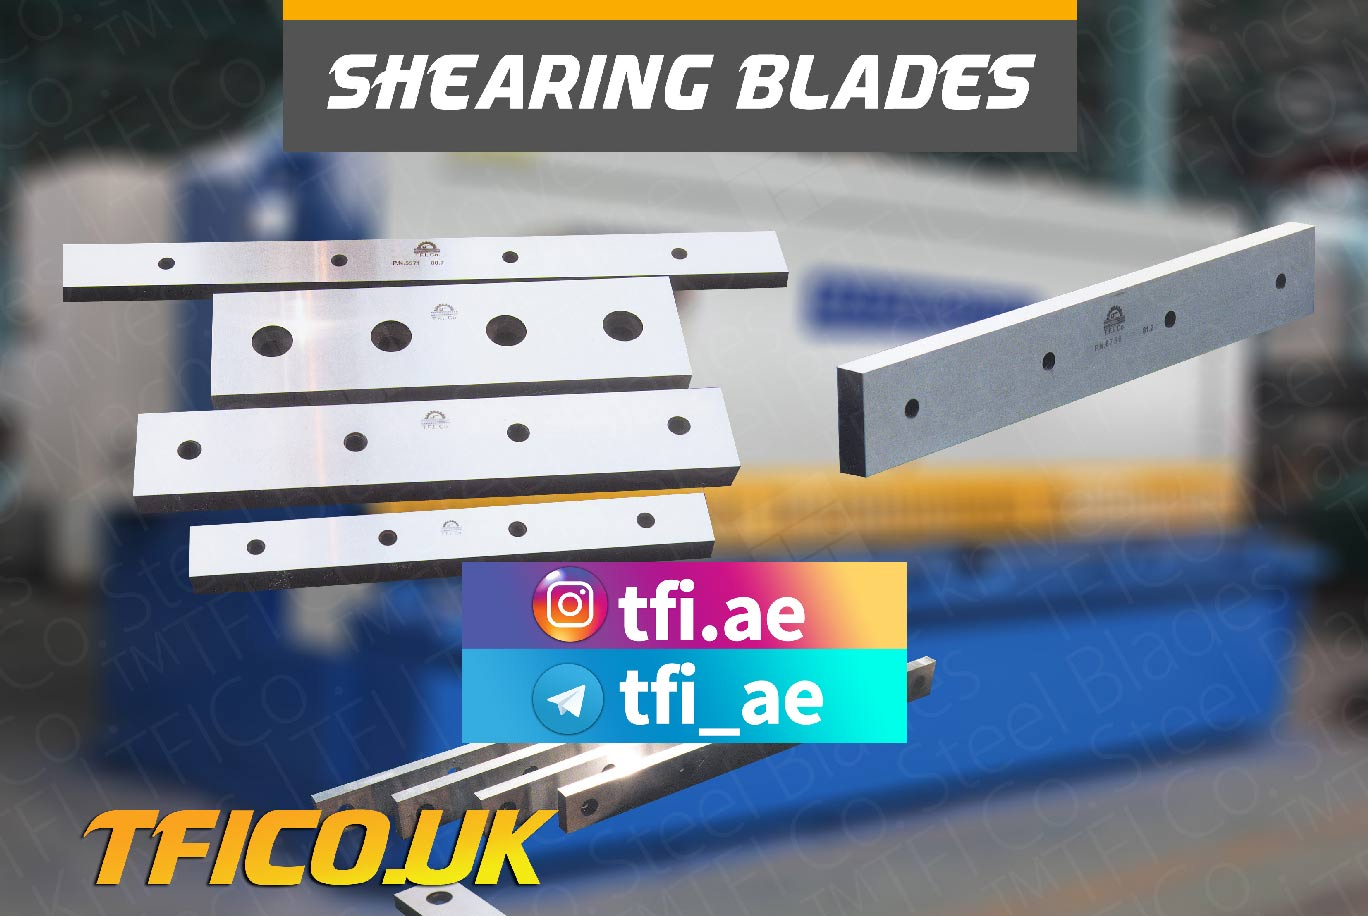 cutter, shear blades, gcc, uae, tfico, guillotine knives, remscheid, tfi, machine knives, steel blades, manufacturer, tokoyo, california, colorado, toronto, guillotine,